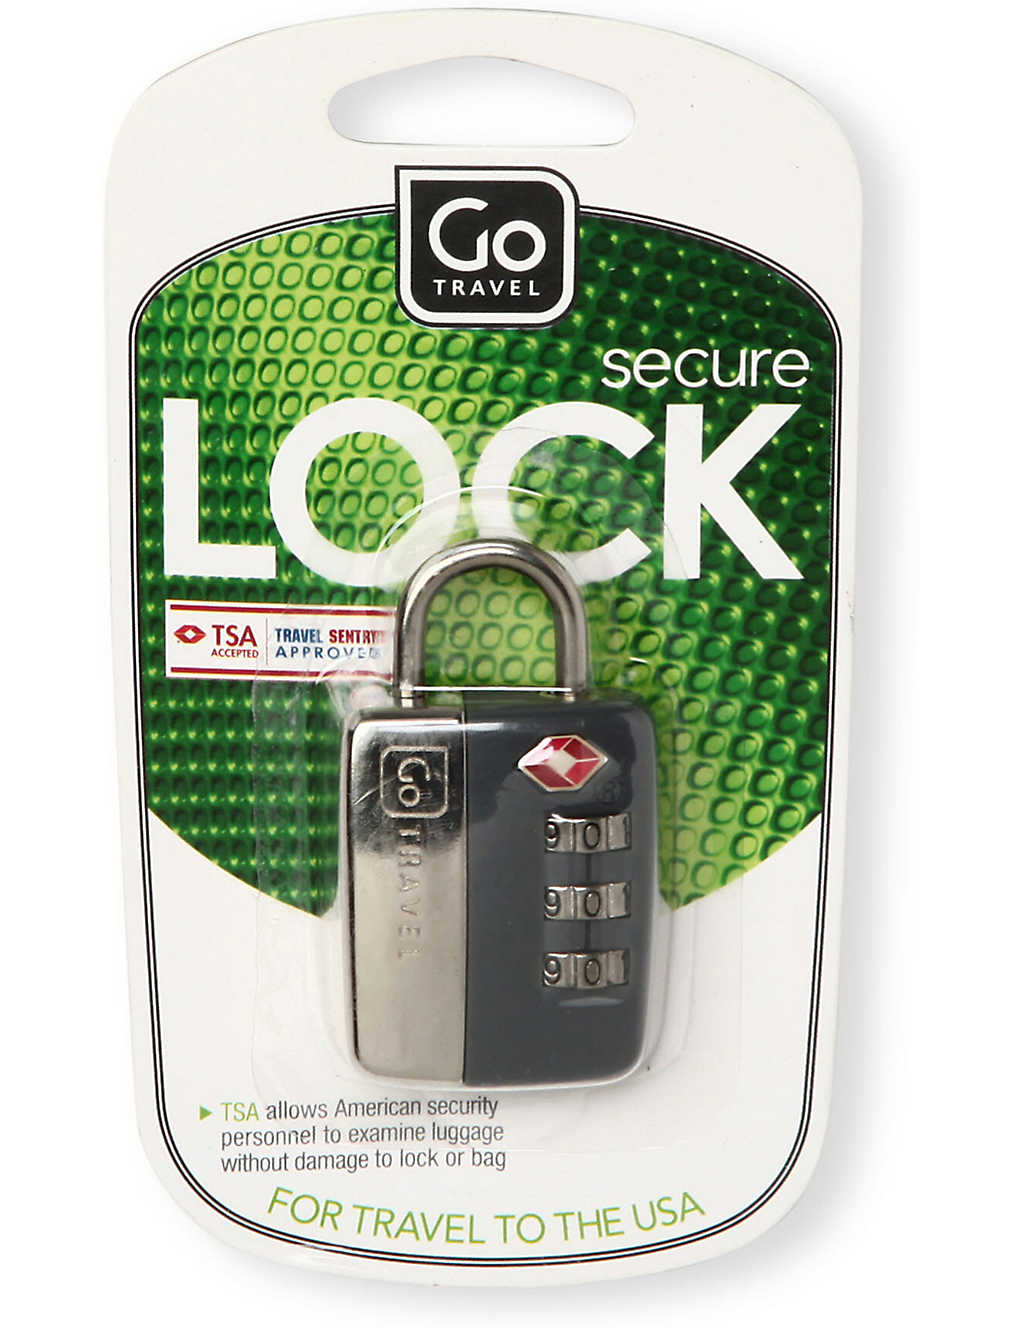 GO TRAVEL: Travel sentry secure lock